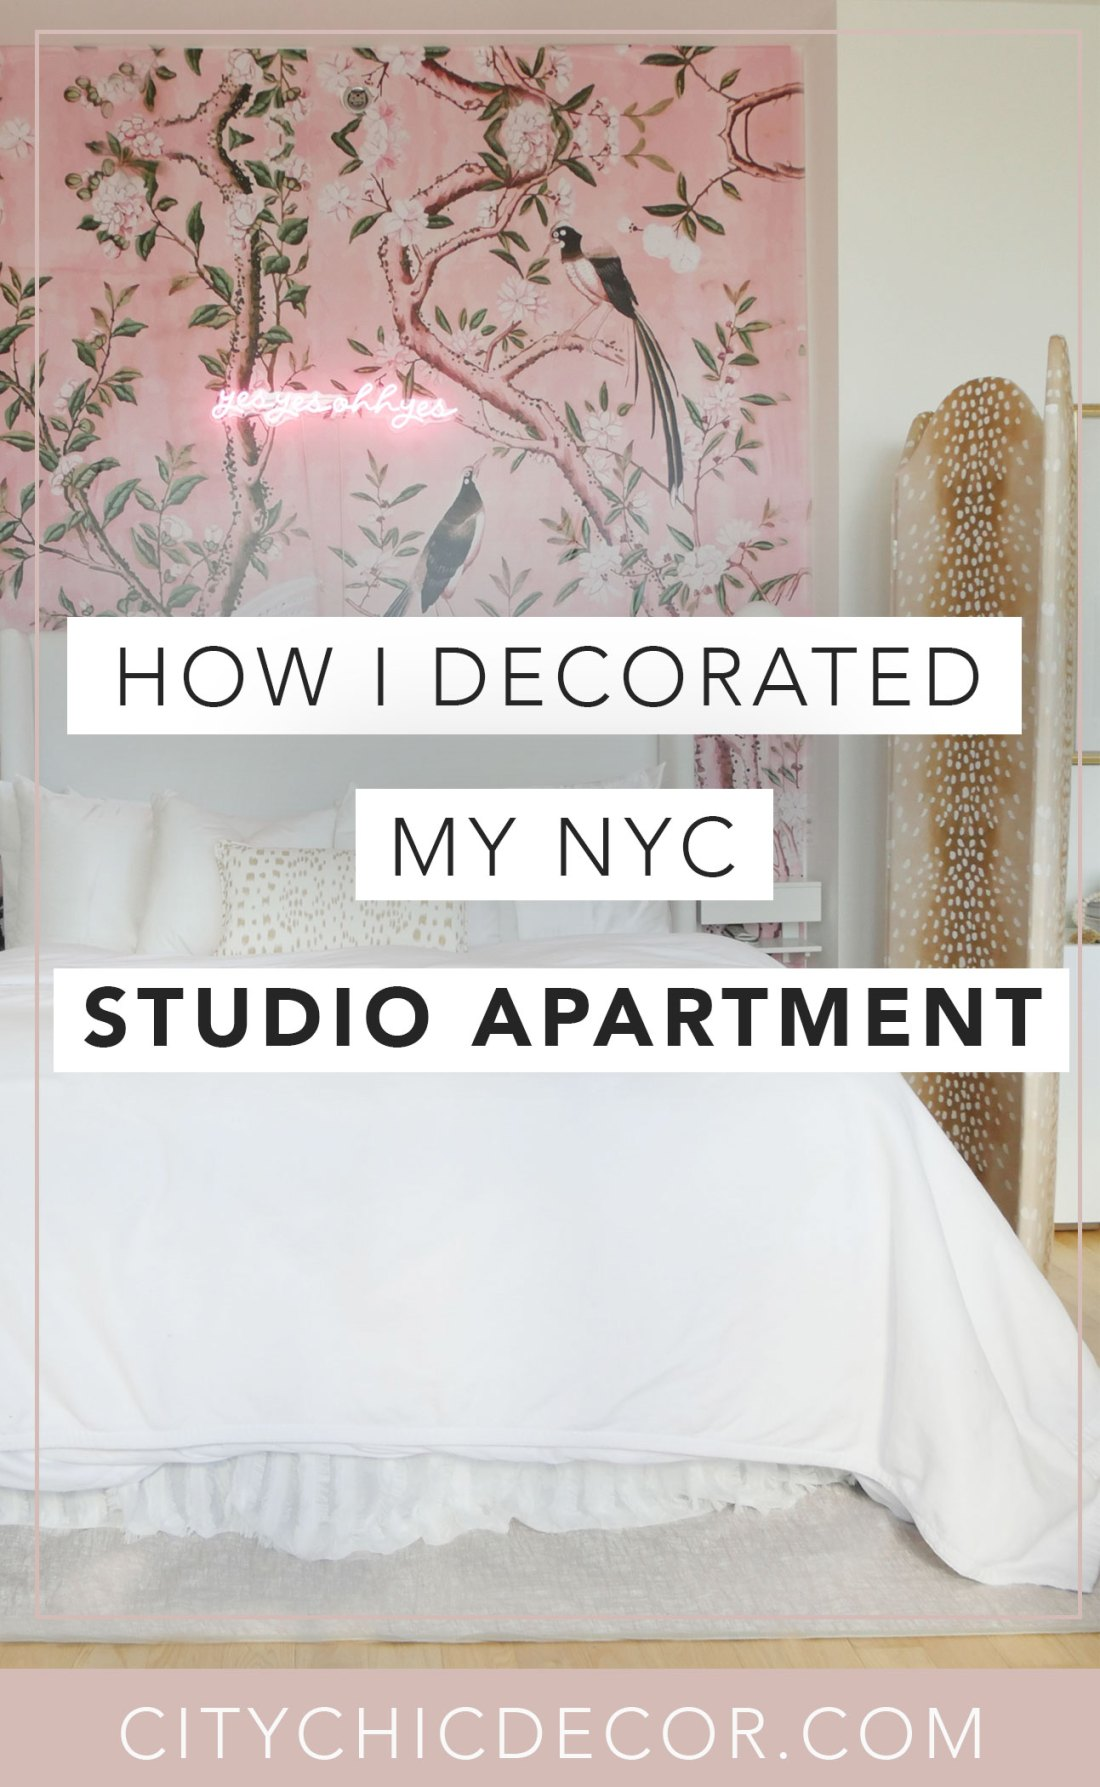 Live in a small apartment, home or studio and don't know how to decorate it? Or on a tight budget and feel like you don't have the money to spend on new furniture? Well, you can finally erase those fears! Learn how to decorate and turn a small space into a chic home and divide your room #studioapartmentideas #tinystudioapartmentideas #studioapartmentdecorating #decoratingonabudget #smallapartmentideas #roomdivider